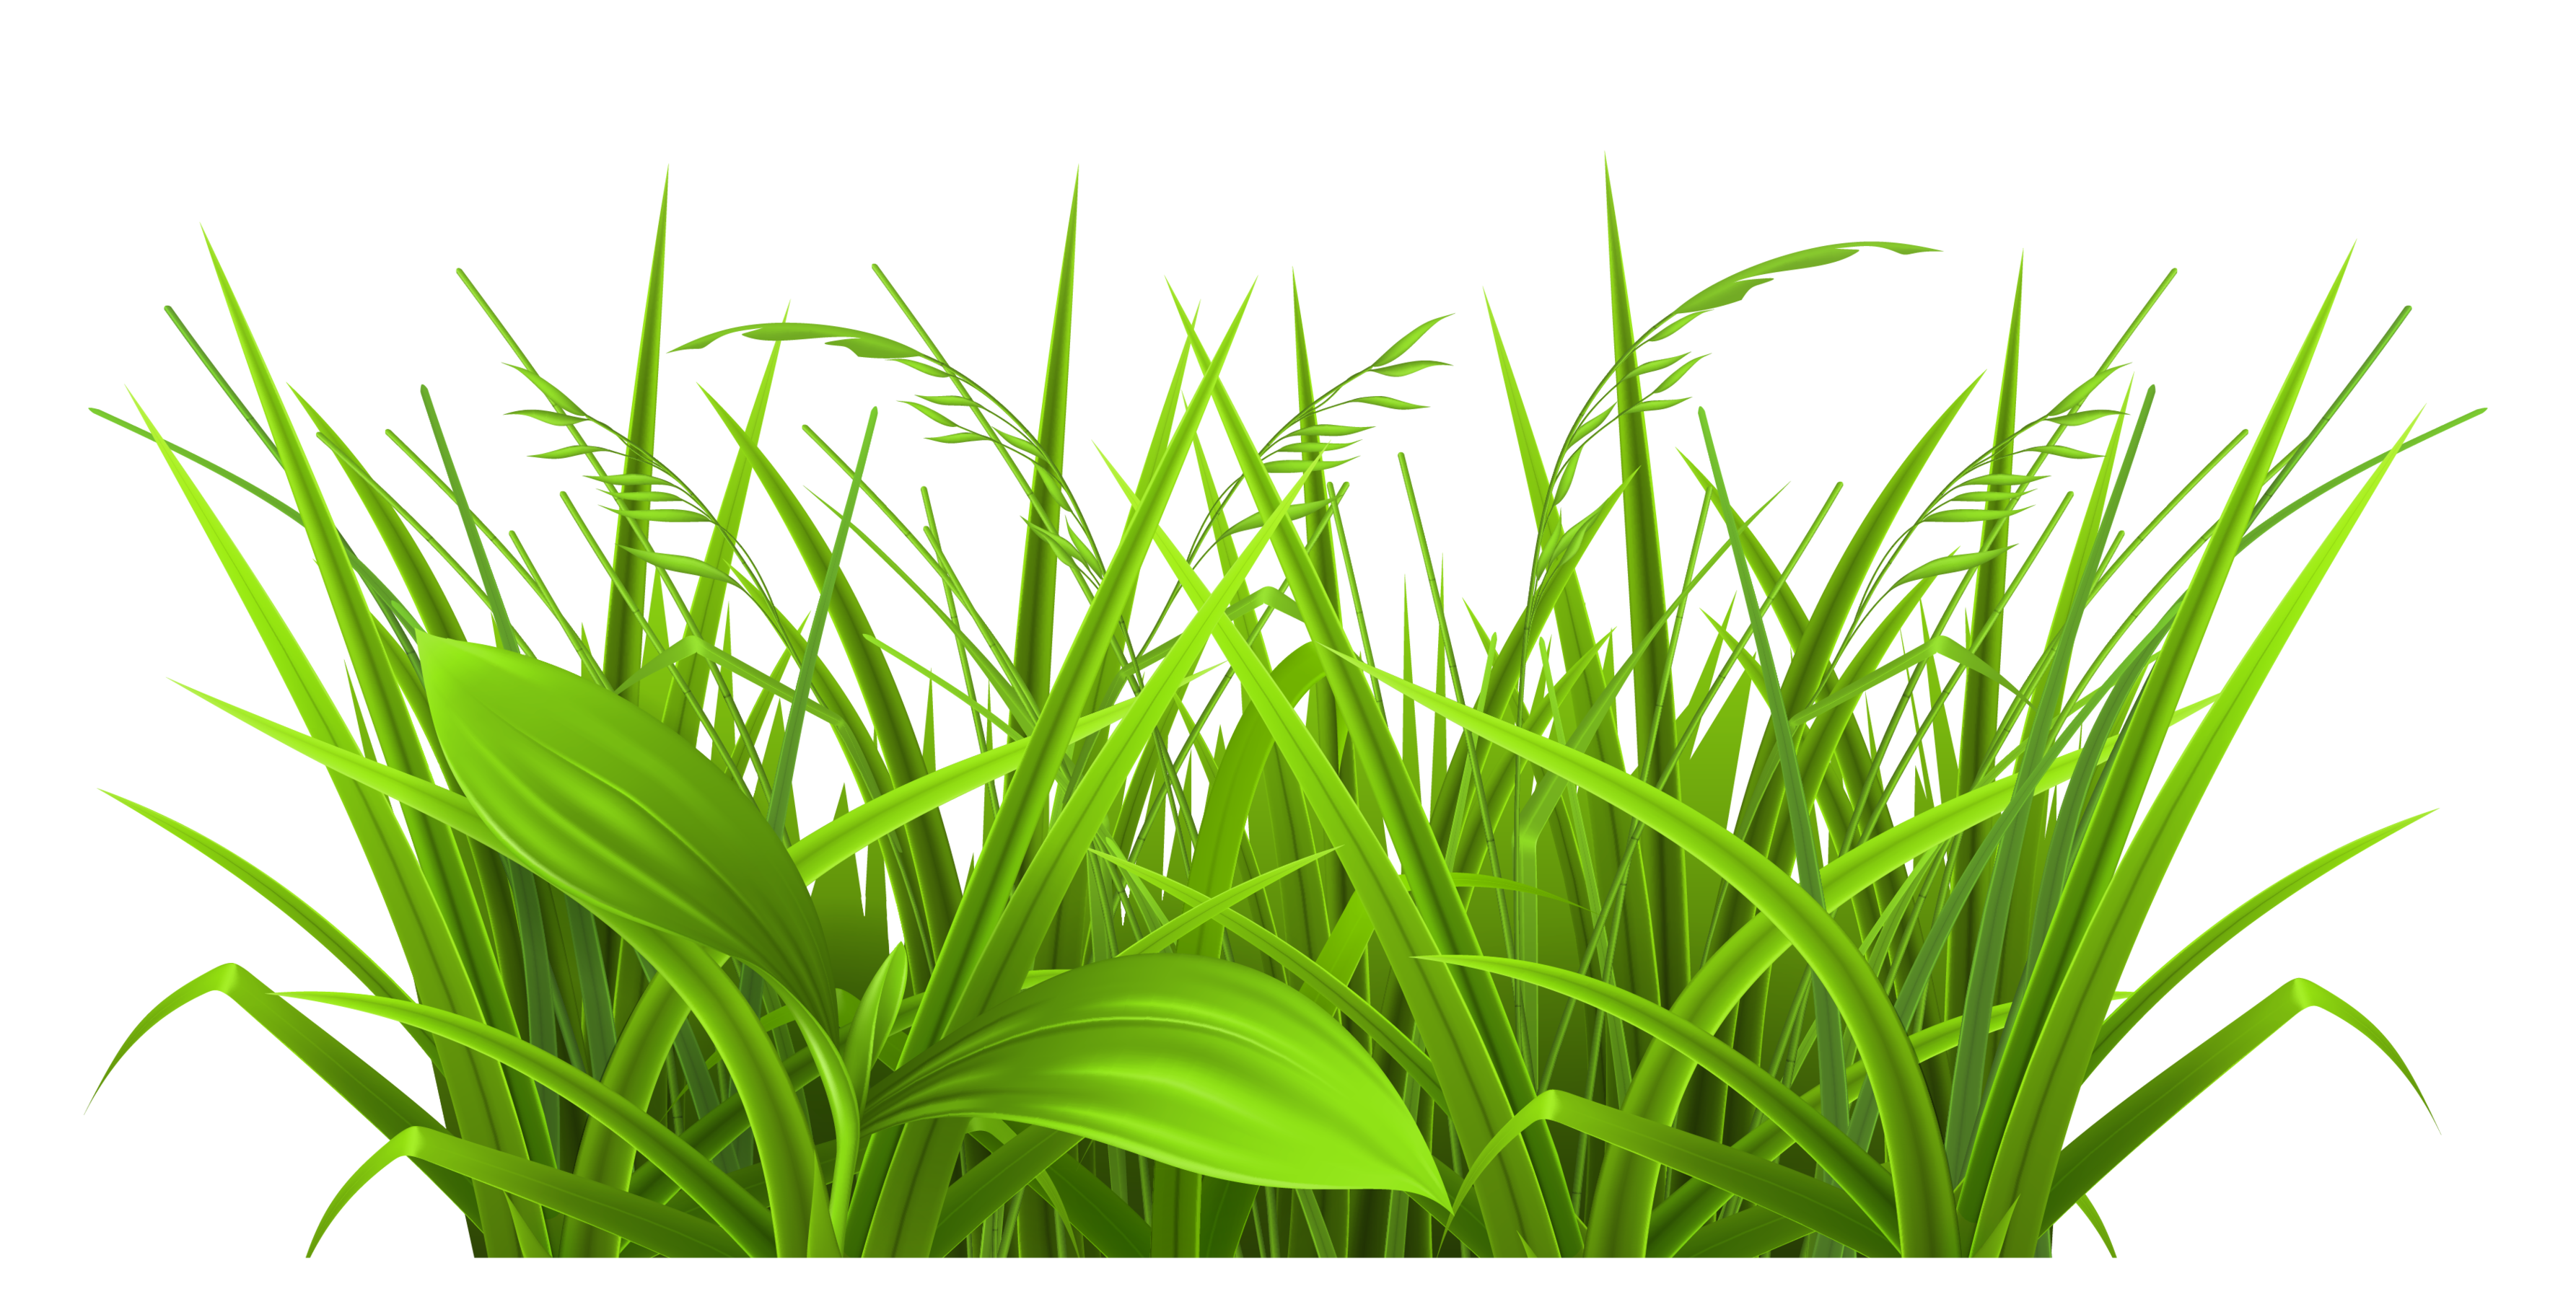 grass silhouette free at getdrawings com free for personal use rh getdrawings com free golf grass clipart free golf grass clipart